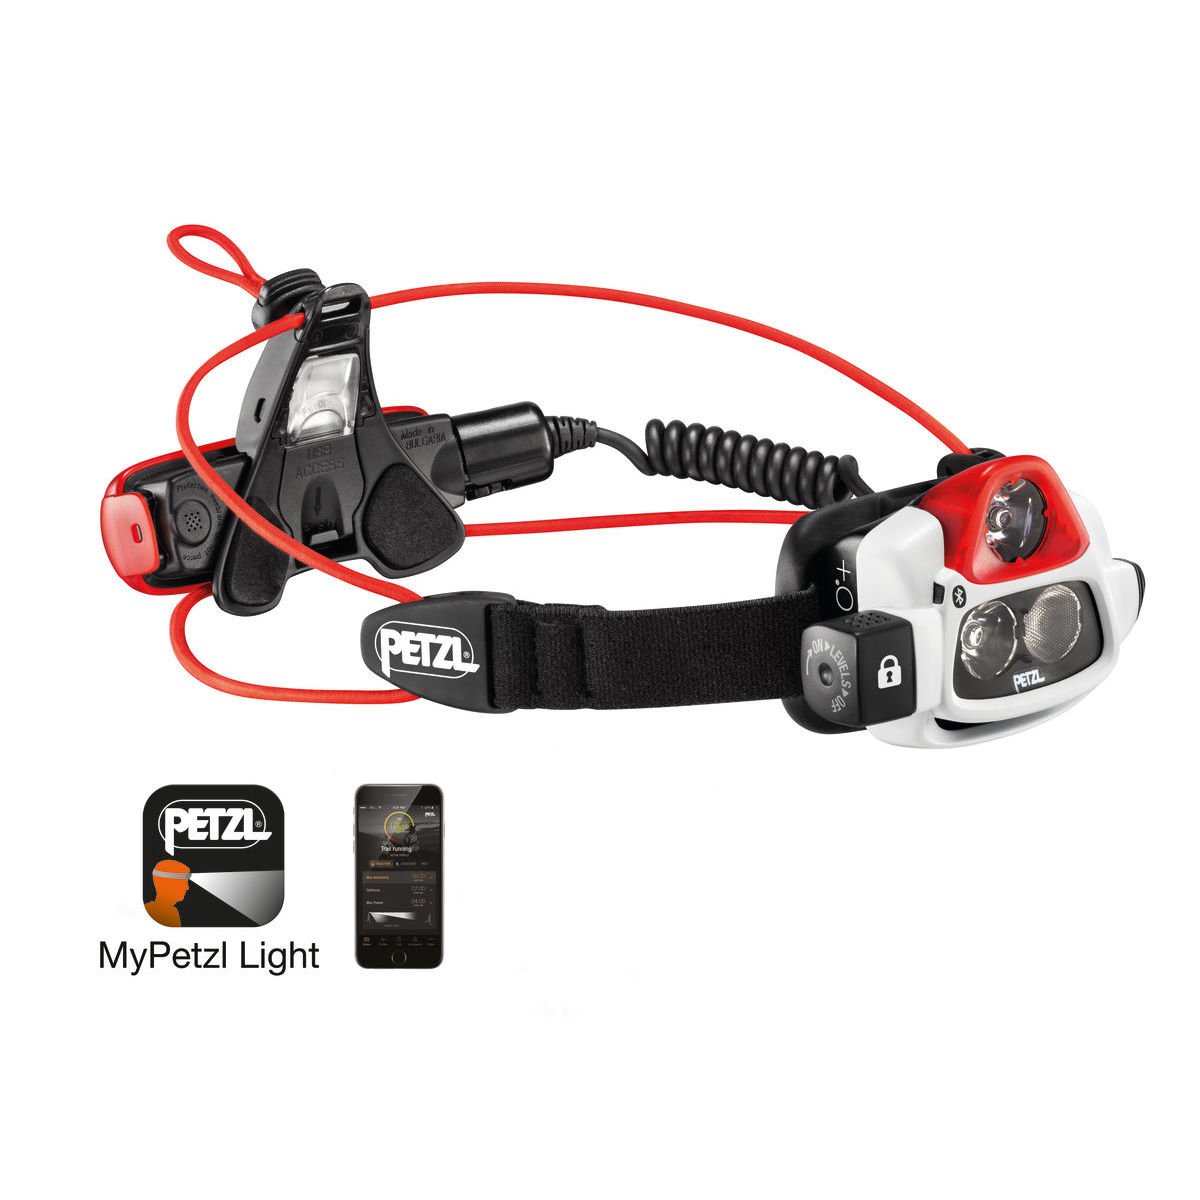 Image of Lampe frontale Petzl Nao+ Smart Bluetooth - Noir/Rouge